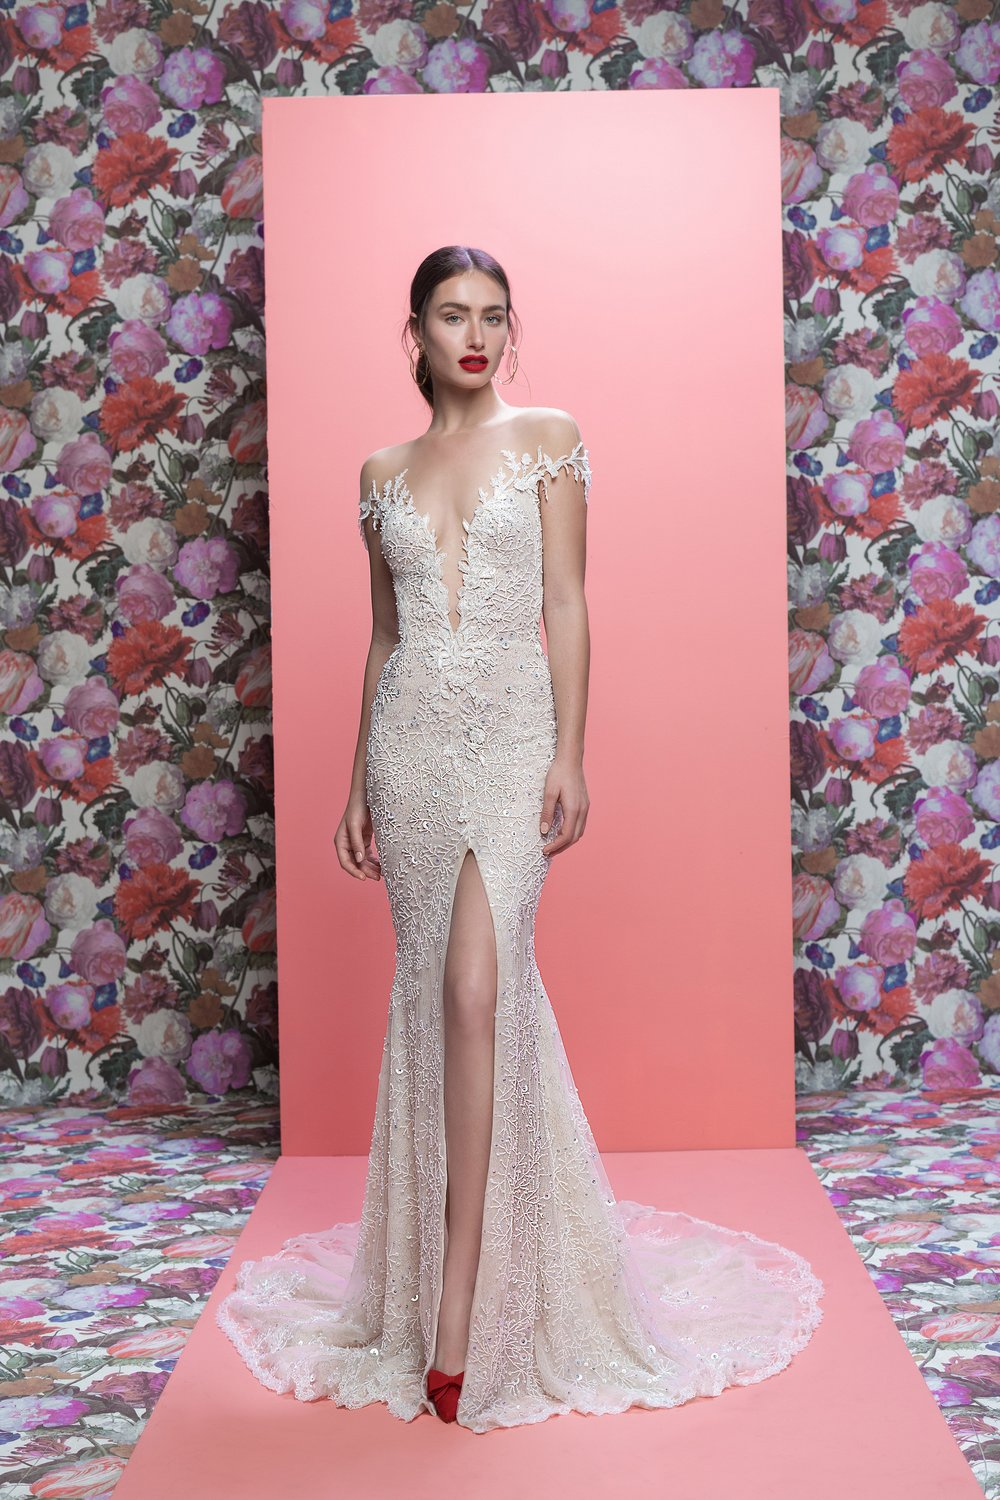 Marleigh-F-galia-lahav-bridal-spring-2019-vogue-16apr18-pr.jpg